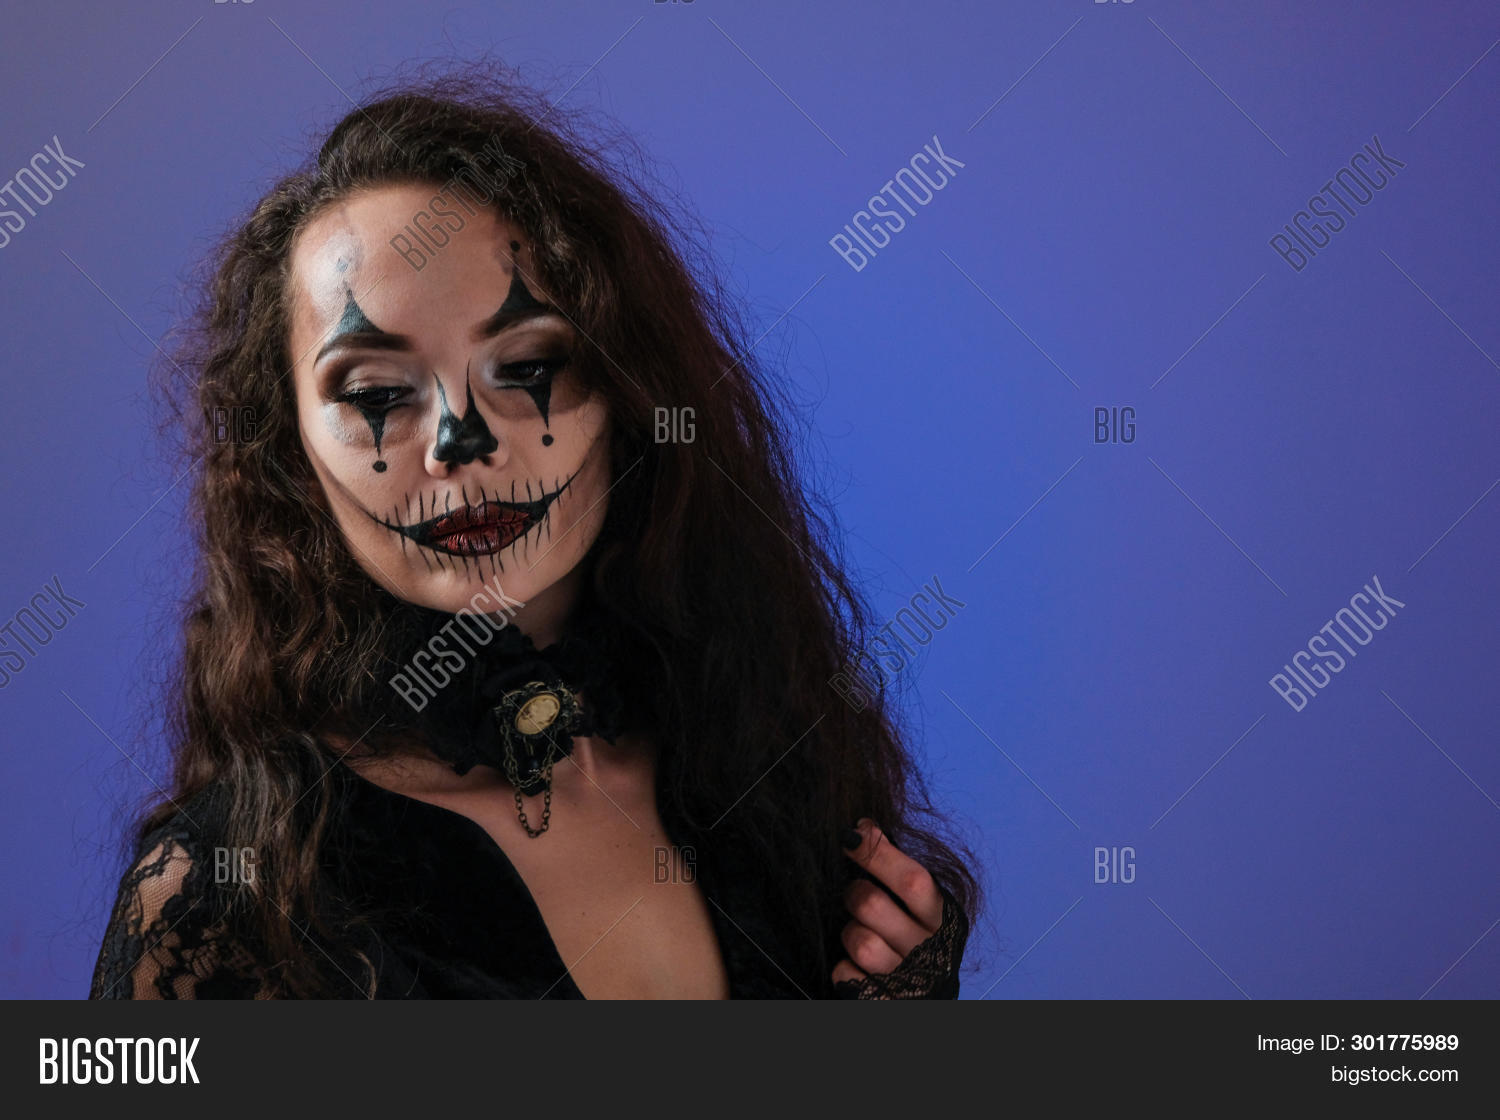 New Halloween Day of the Dead Braces